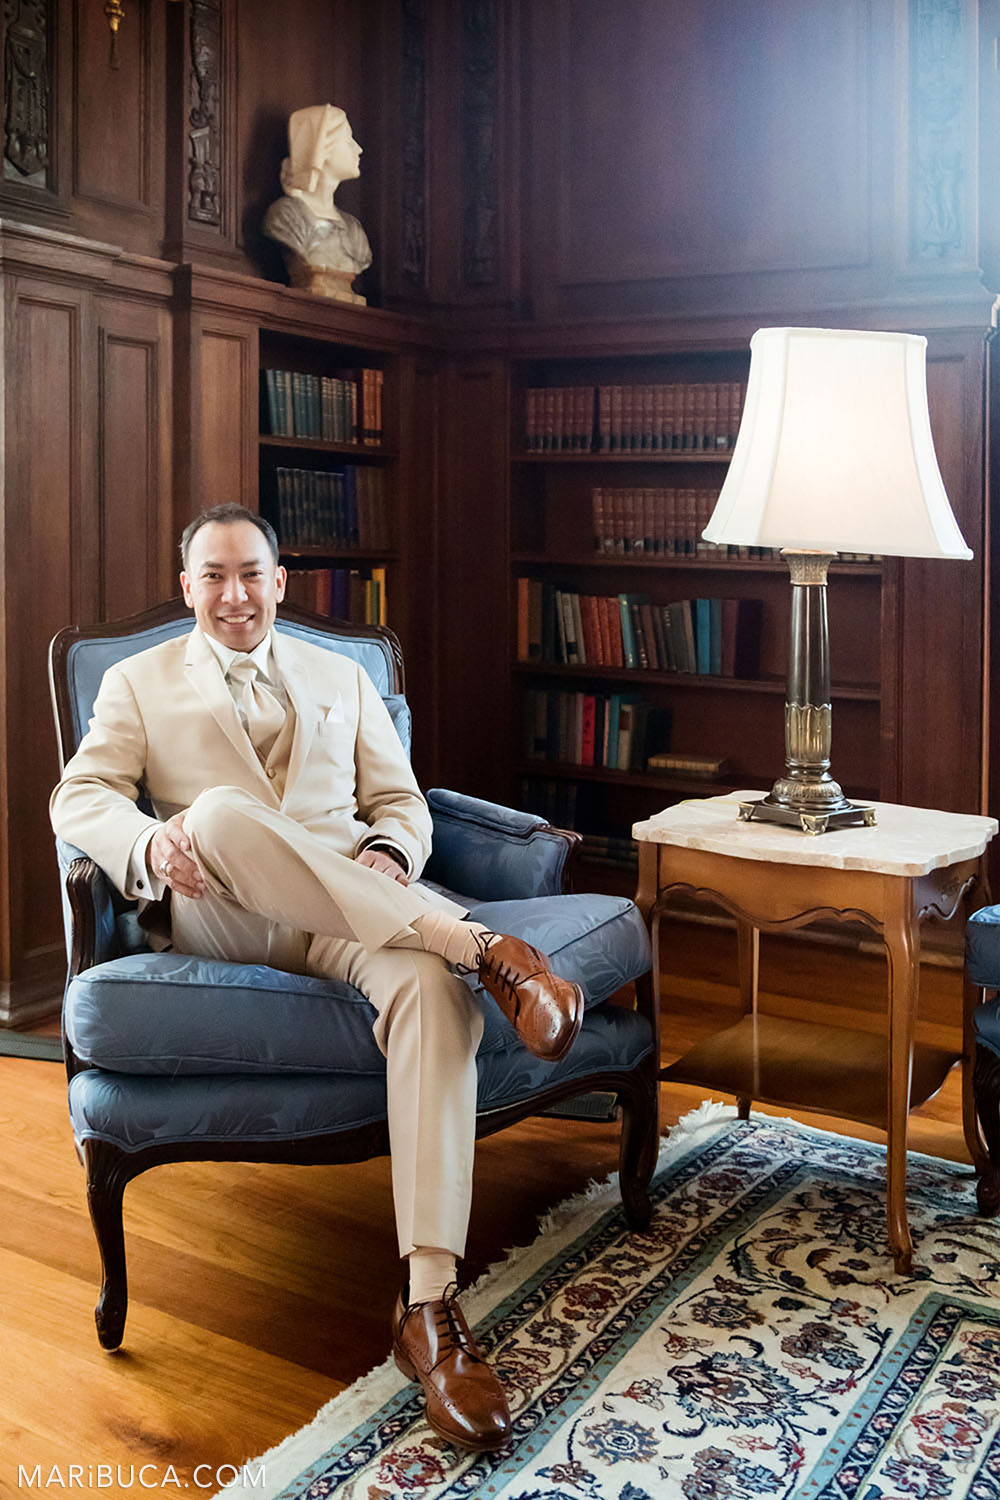 The groom smiles and sits in the Library during getting ready in the Kohl Mansion, Burlingame